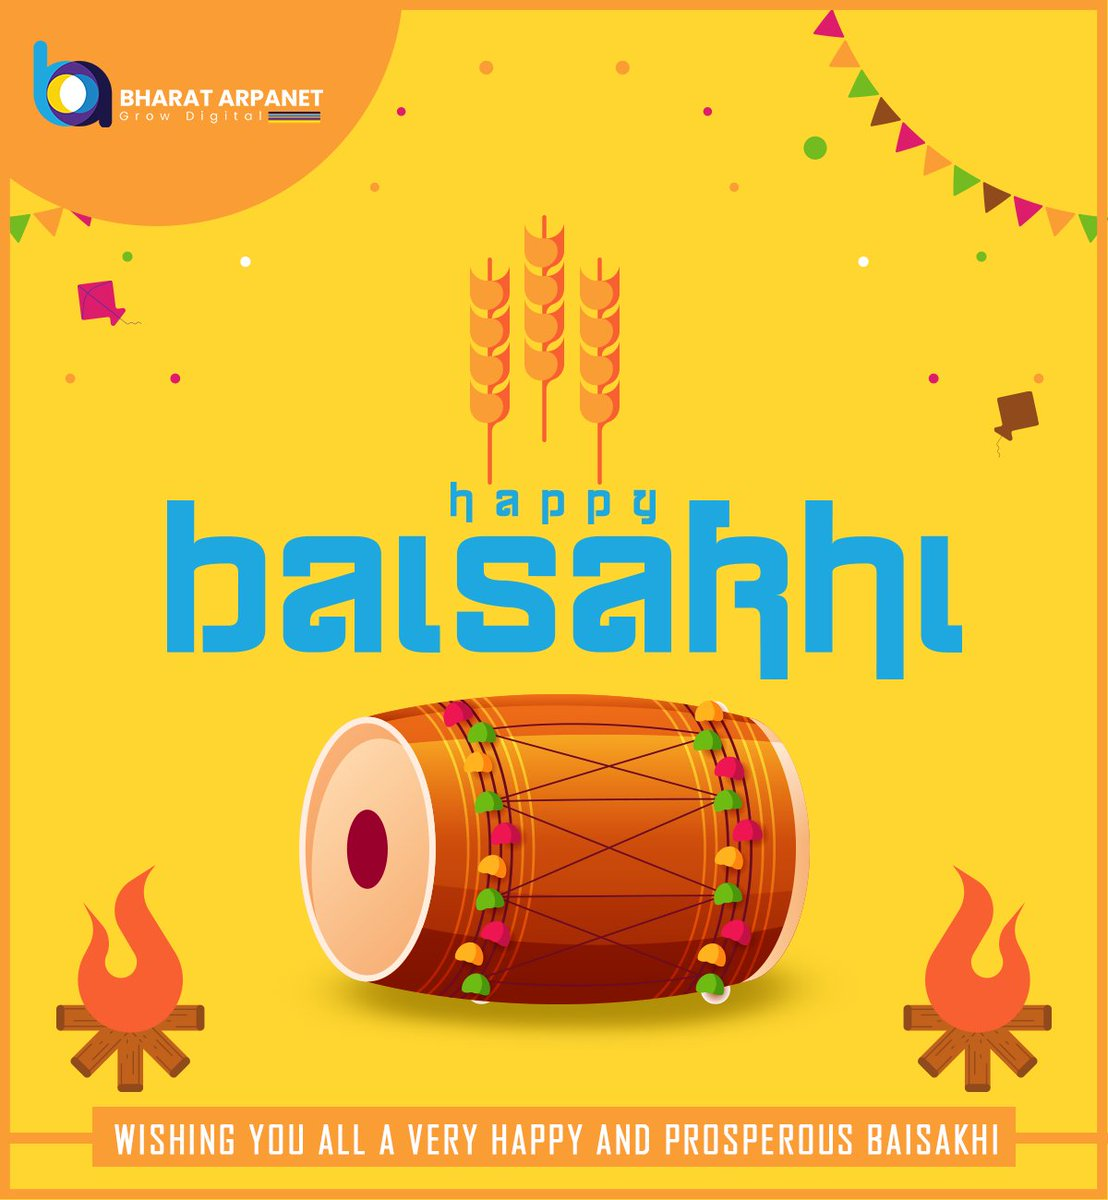 May this new harvesting season bring a lot of happiness and good health for all of you! We will definitely overcome this adverse situation soon. #HappyBaisakhi  #BharatArpanet #HappyBaisakhi2020 https://t.co/HNQR014r5n